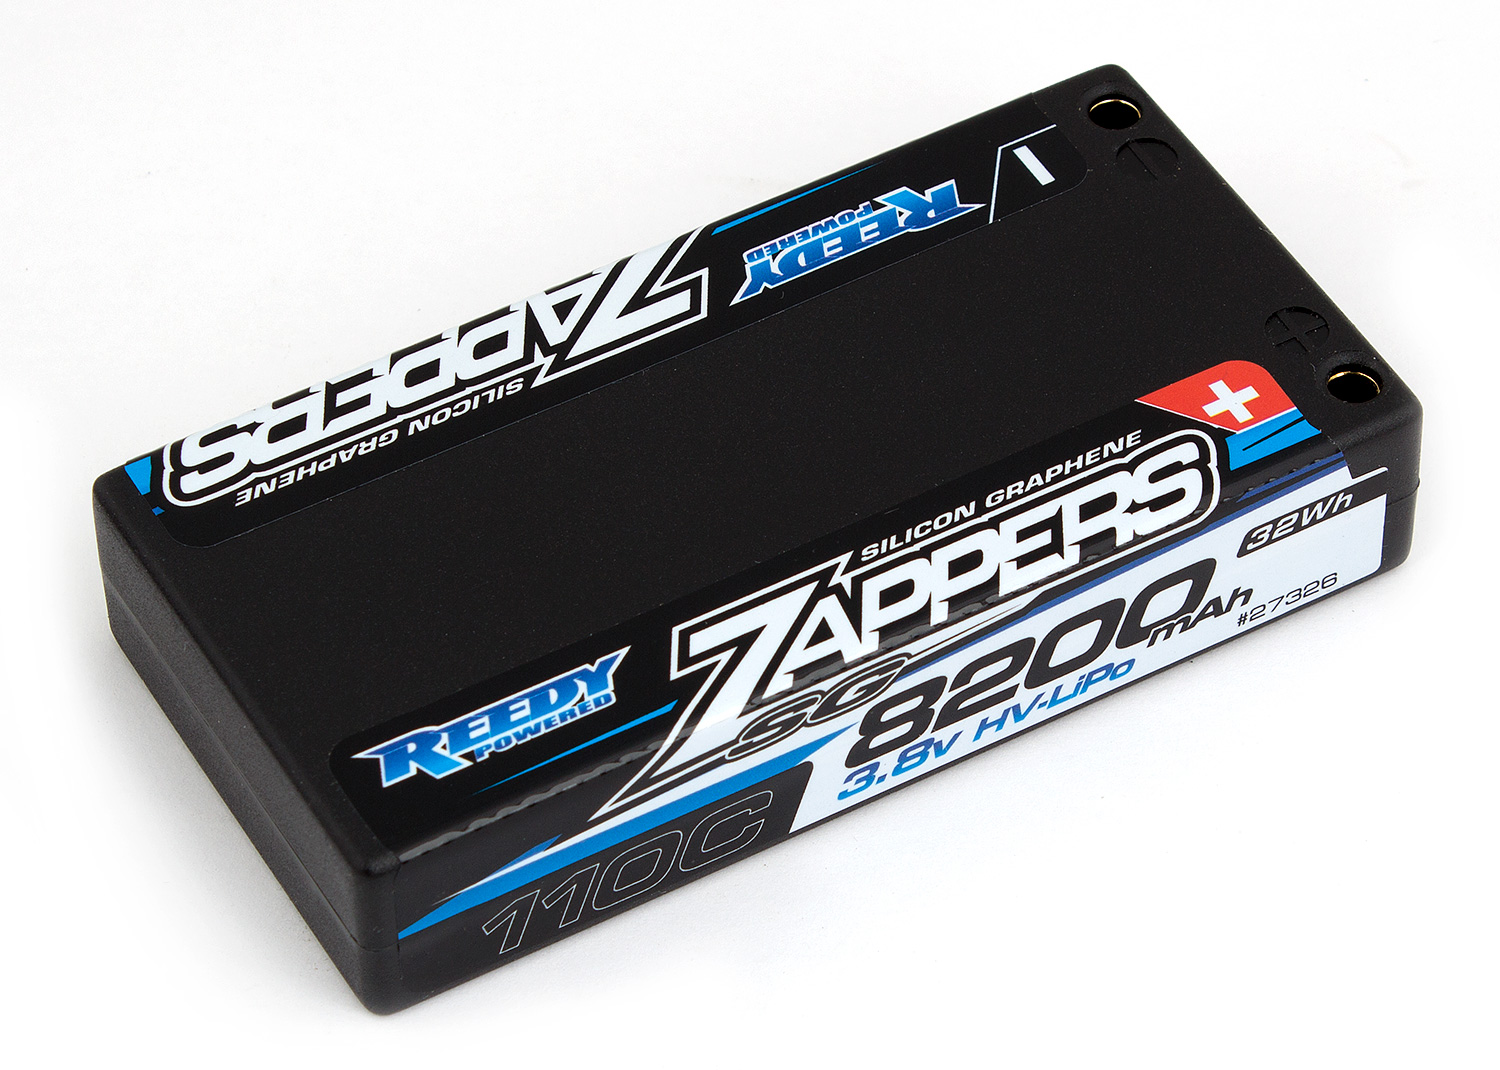 Reedy Zappers SG 8200mAh 110C 3.8V Lipo Battery, for 1/12 Scale